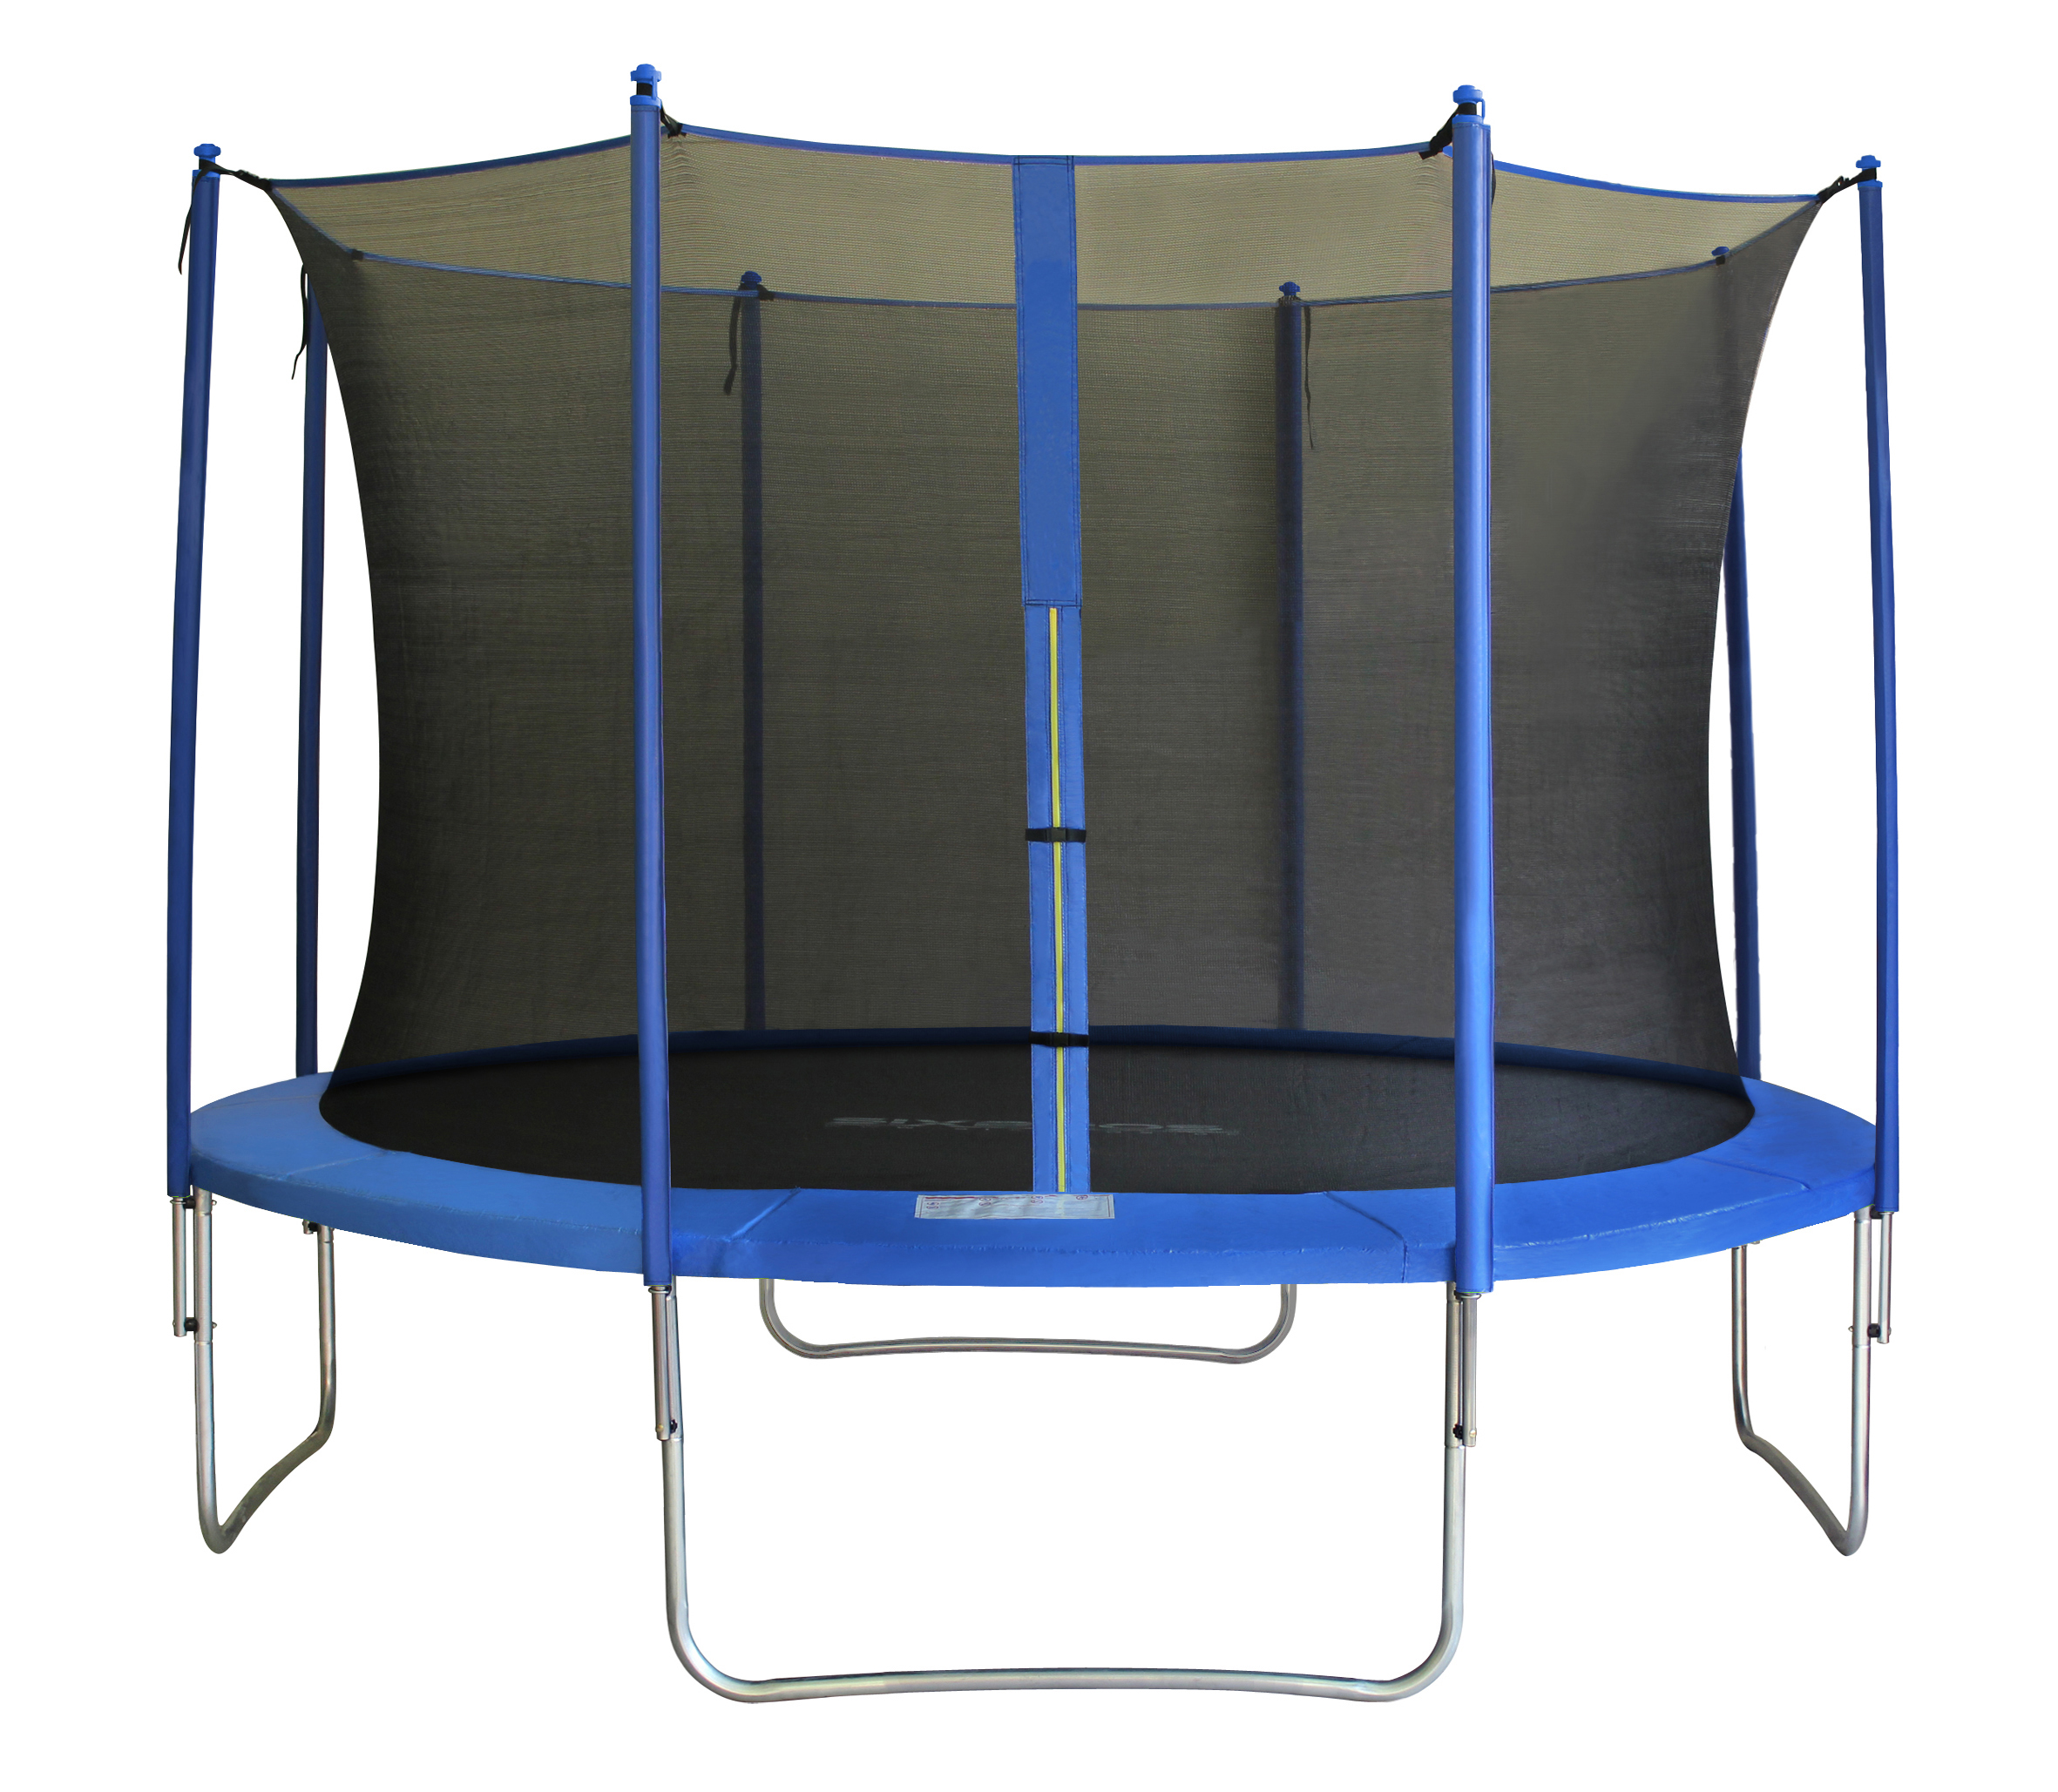 sixbros sixjump trampoline de jardin filet a l int rieur 185 460 cm ebay. Black Bedroom Furniture Sets. Home Design Ideas